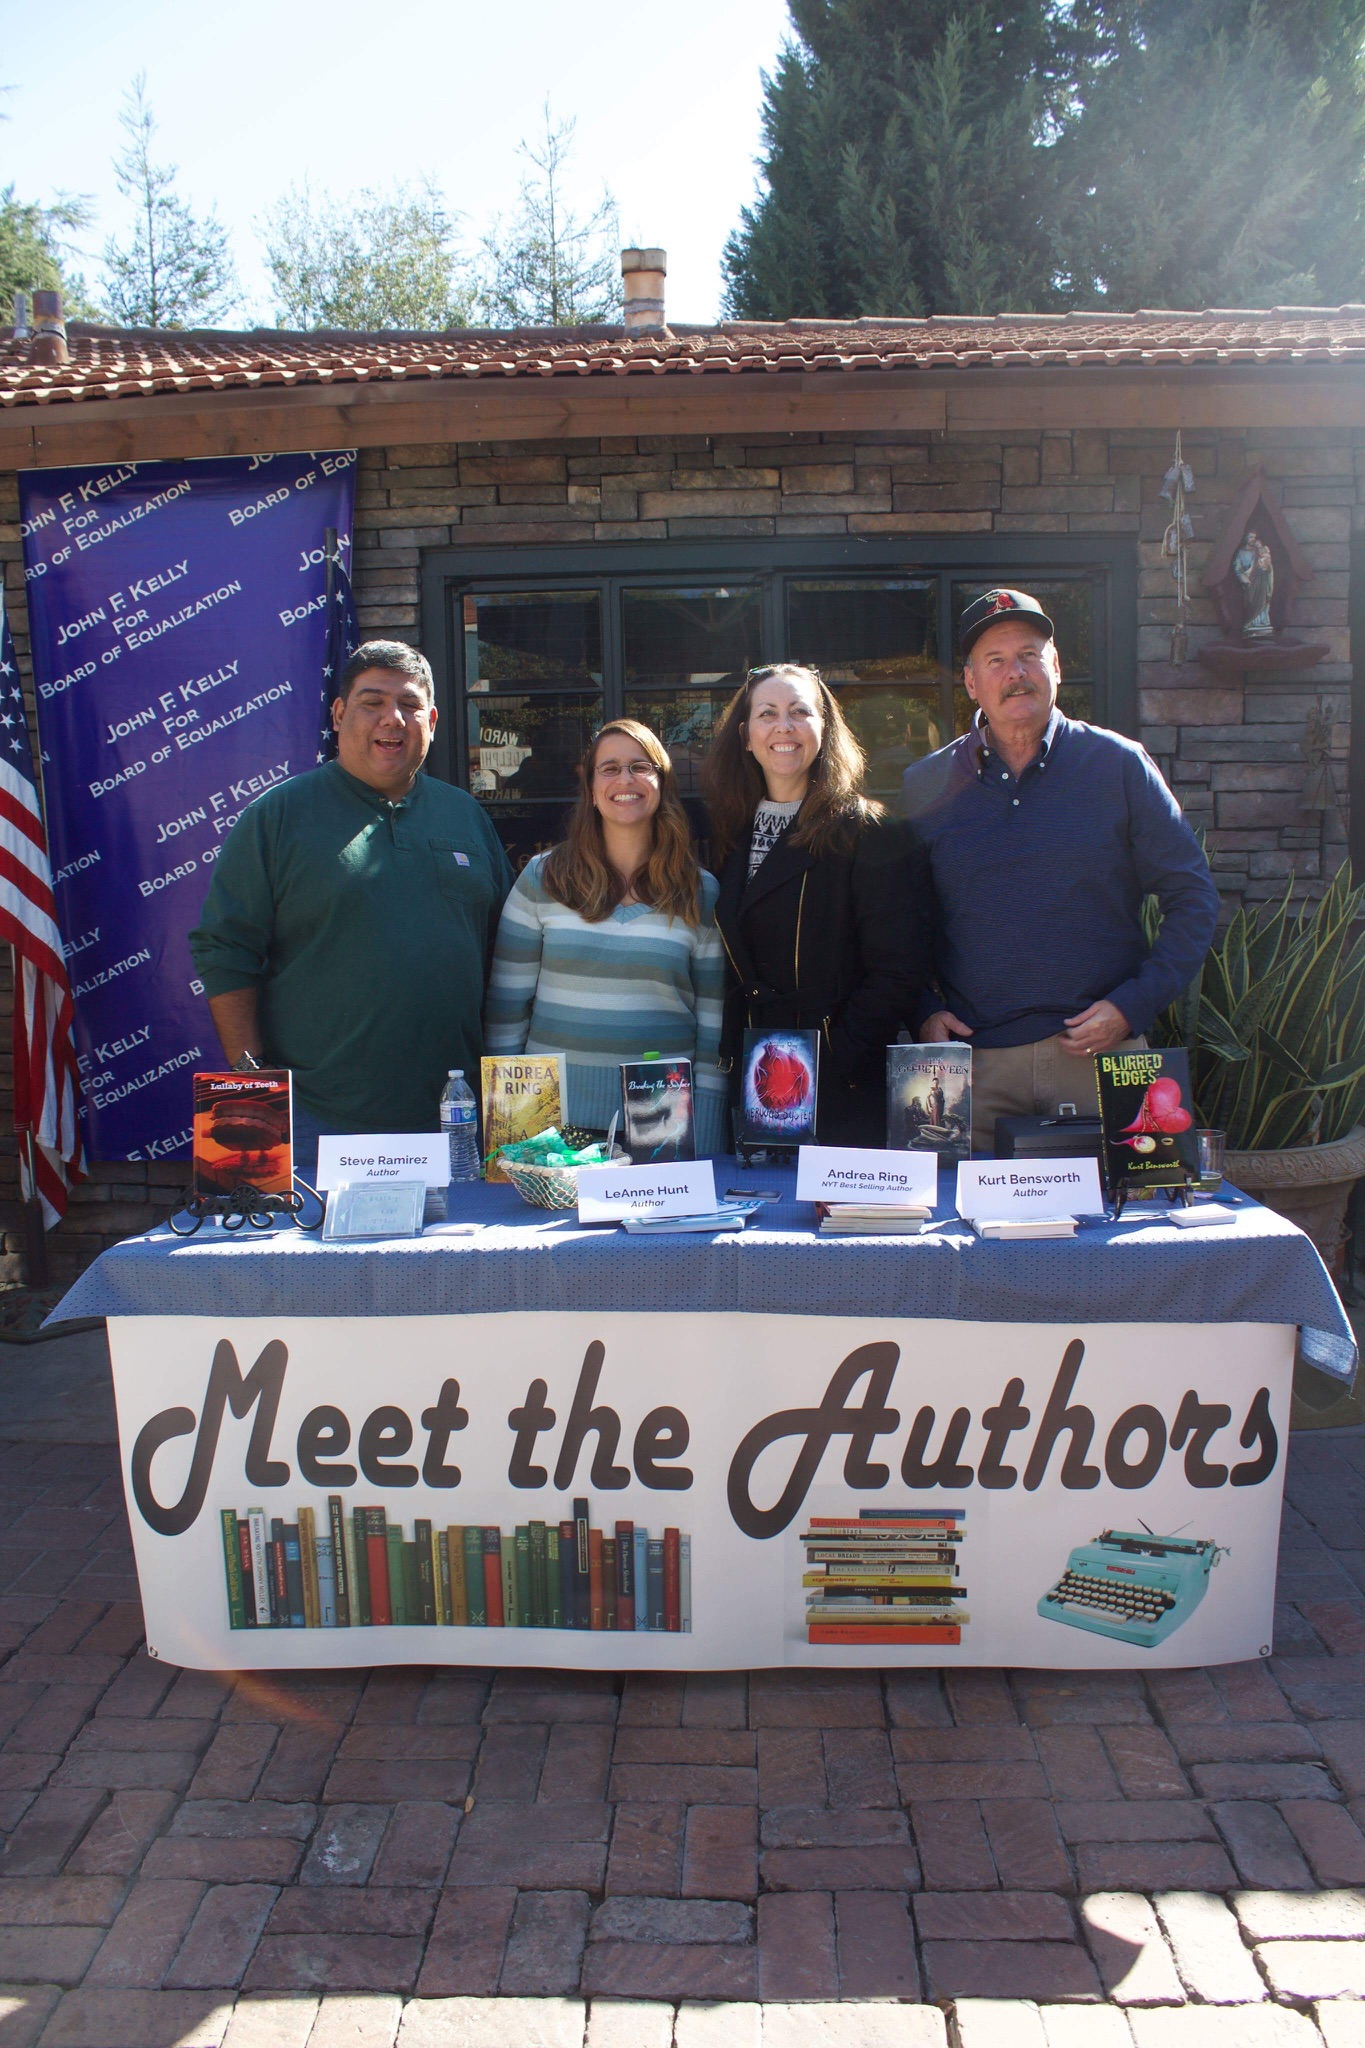 From the box set promotional event last Saturday. (L-R, Steve Ramirez, me, Andrea Ring, and Kurt Bensworth). My co-author Kristin Beckley and Peter Jessup, who has two books is in the e-book box set, were both unable to attend. Thank you, everyone, who was able to make it.